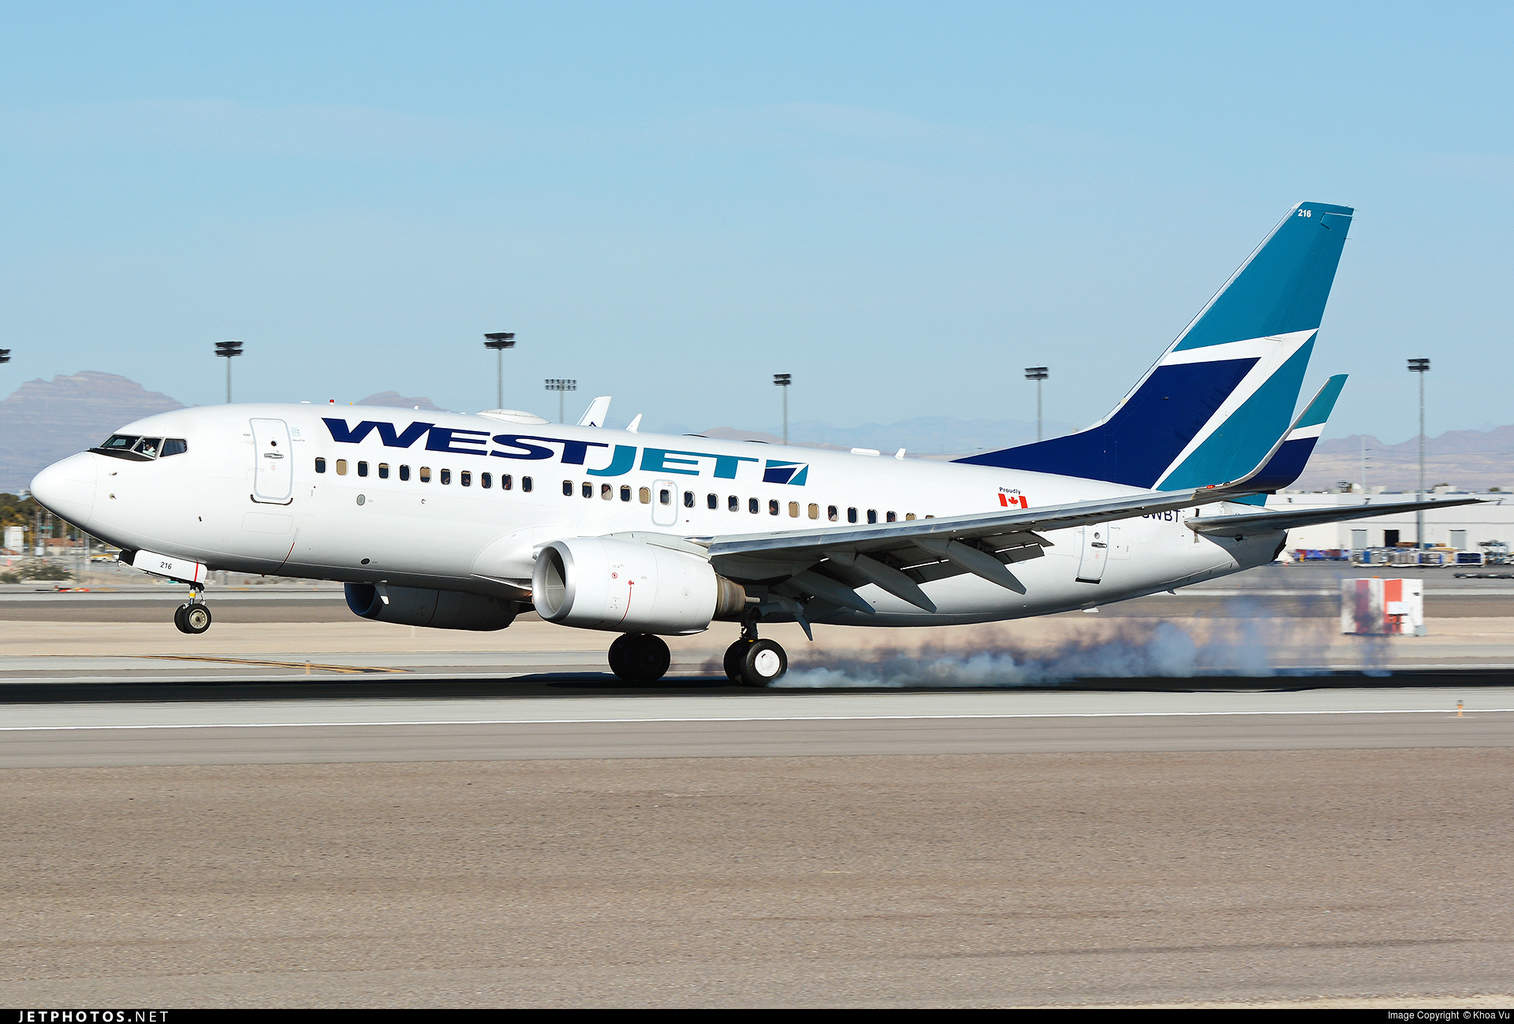 """non-credible"" threat forces WestJet flight to divert to Thunder Bay"